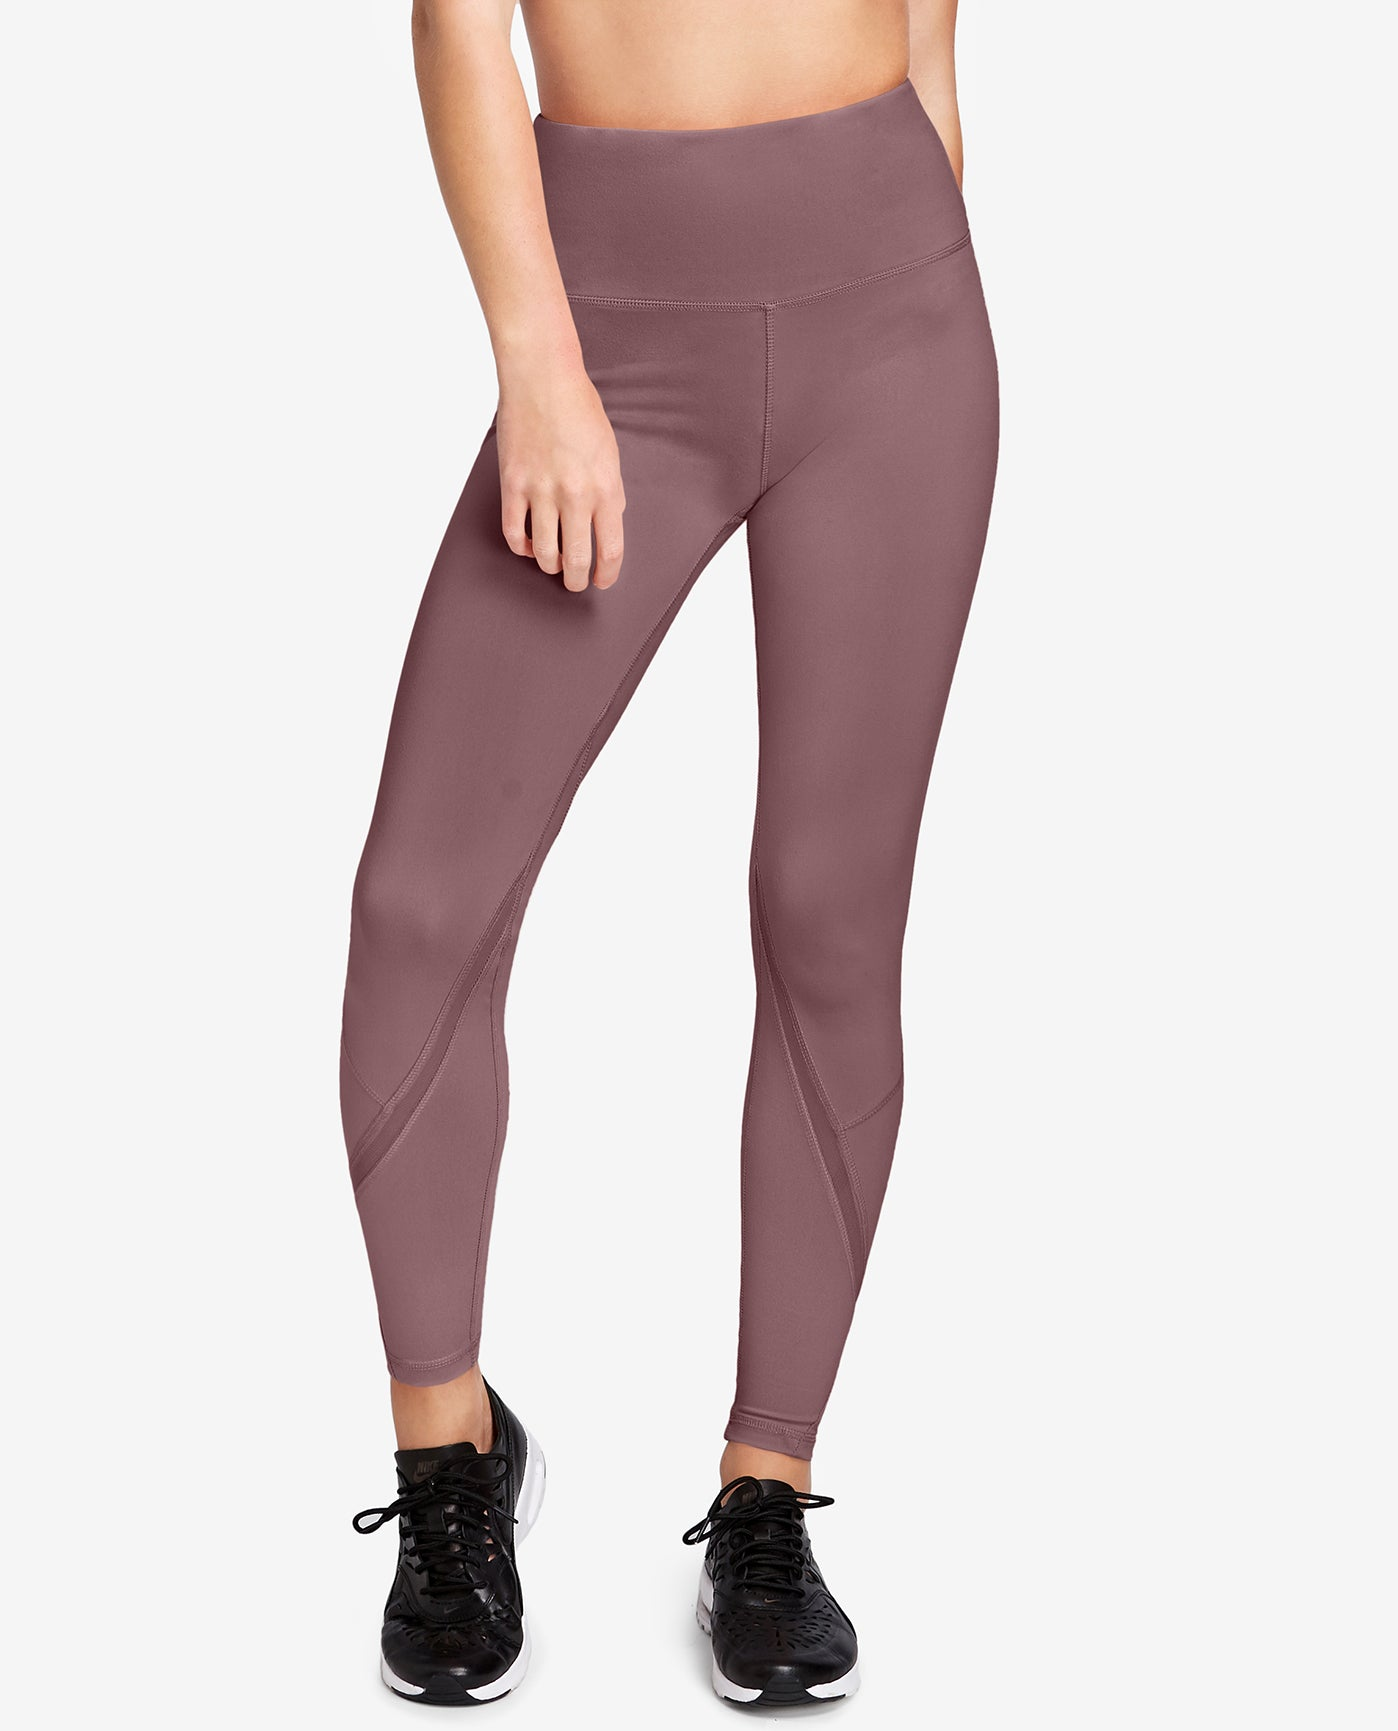 2698459e5d7b84 High Waist Ankle Legging